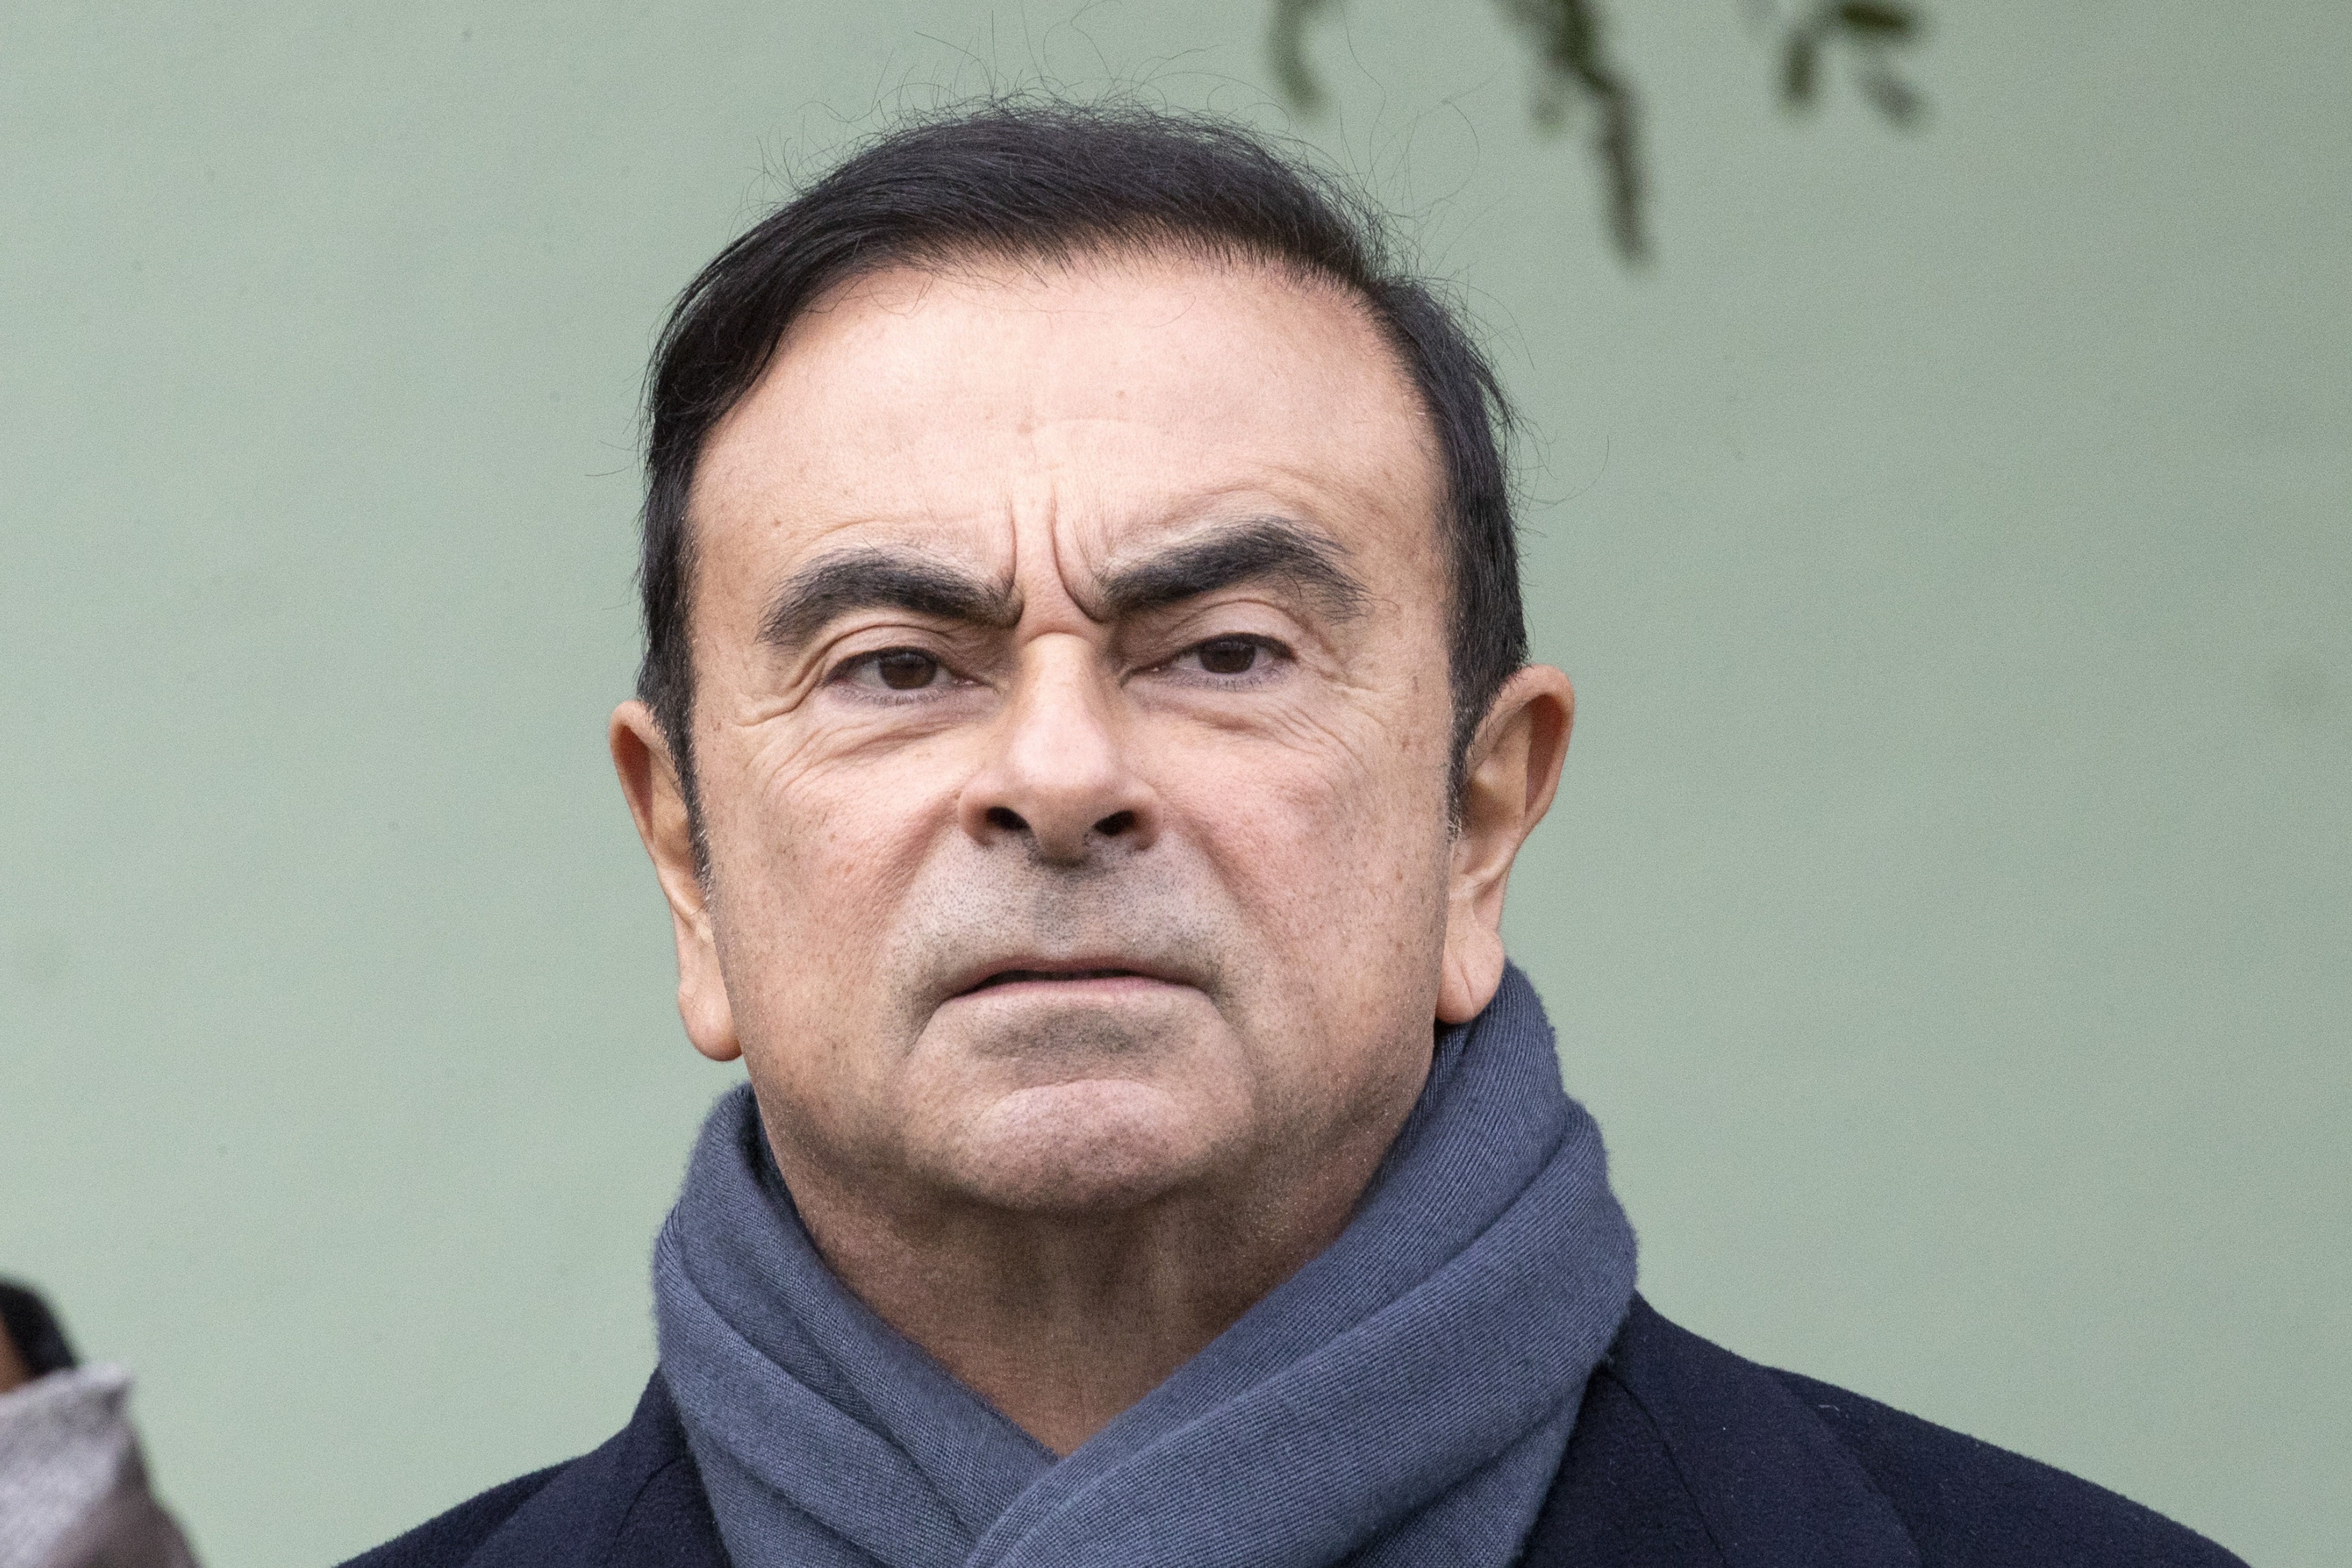 France steps up Ghosn probe into misuse of funds at Renault